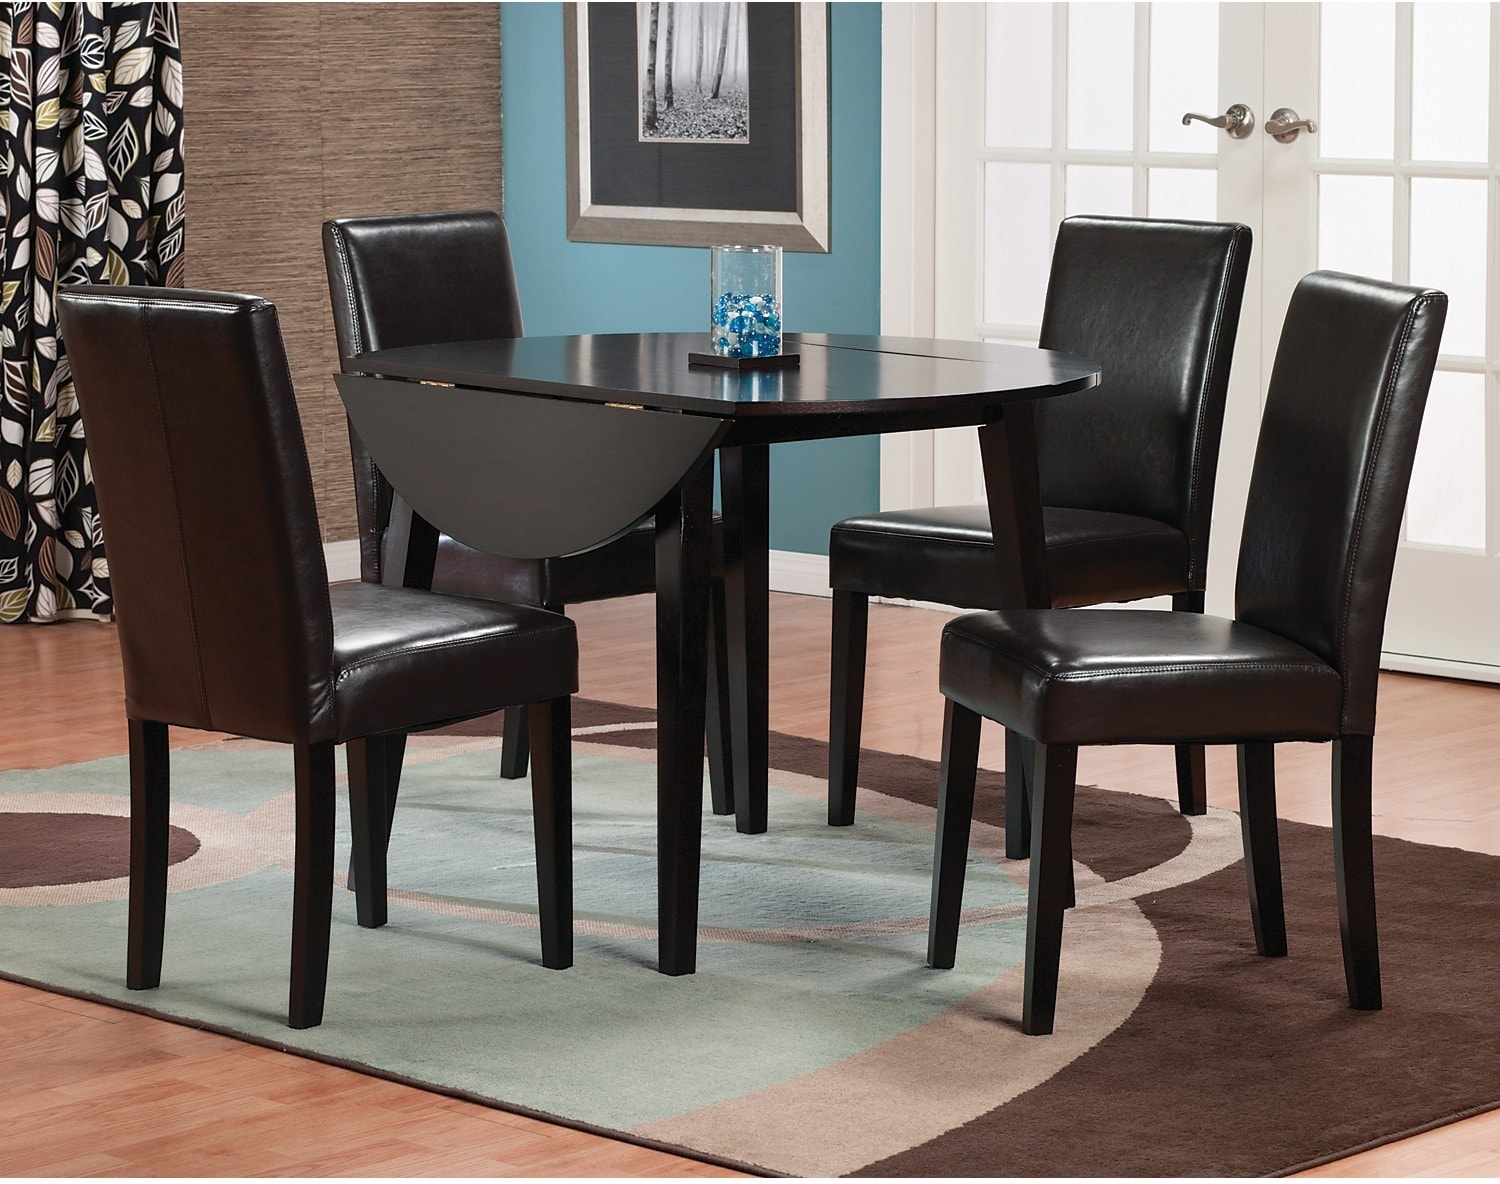 Dining Room Table Set Canada Chairs Edmonton Pads